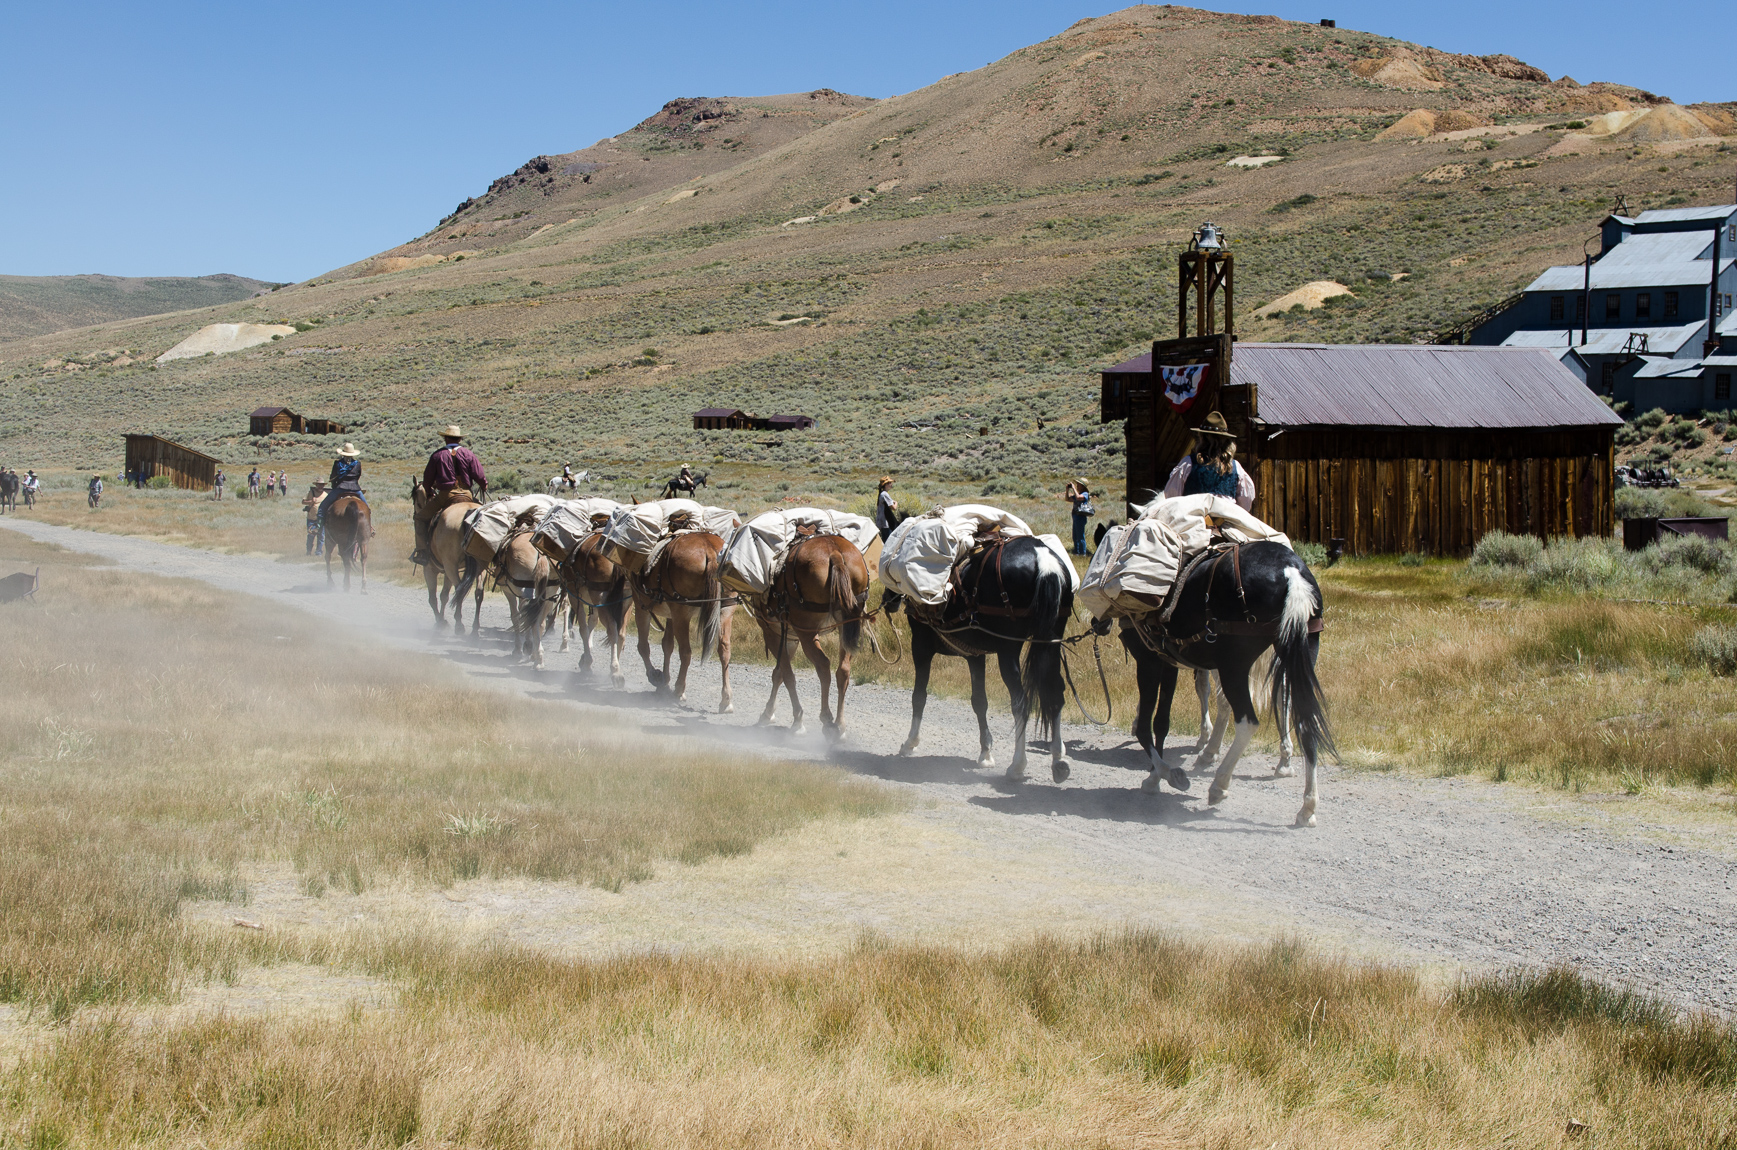 Mules at Bodie day's - CA 2016